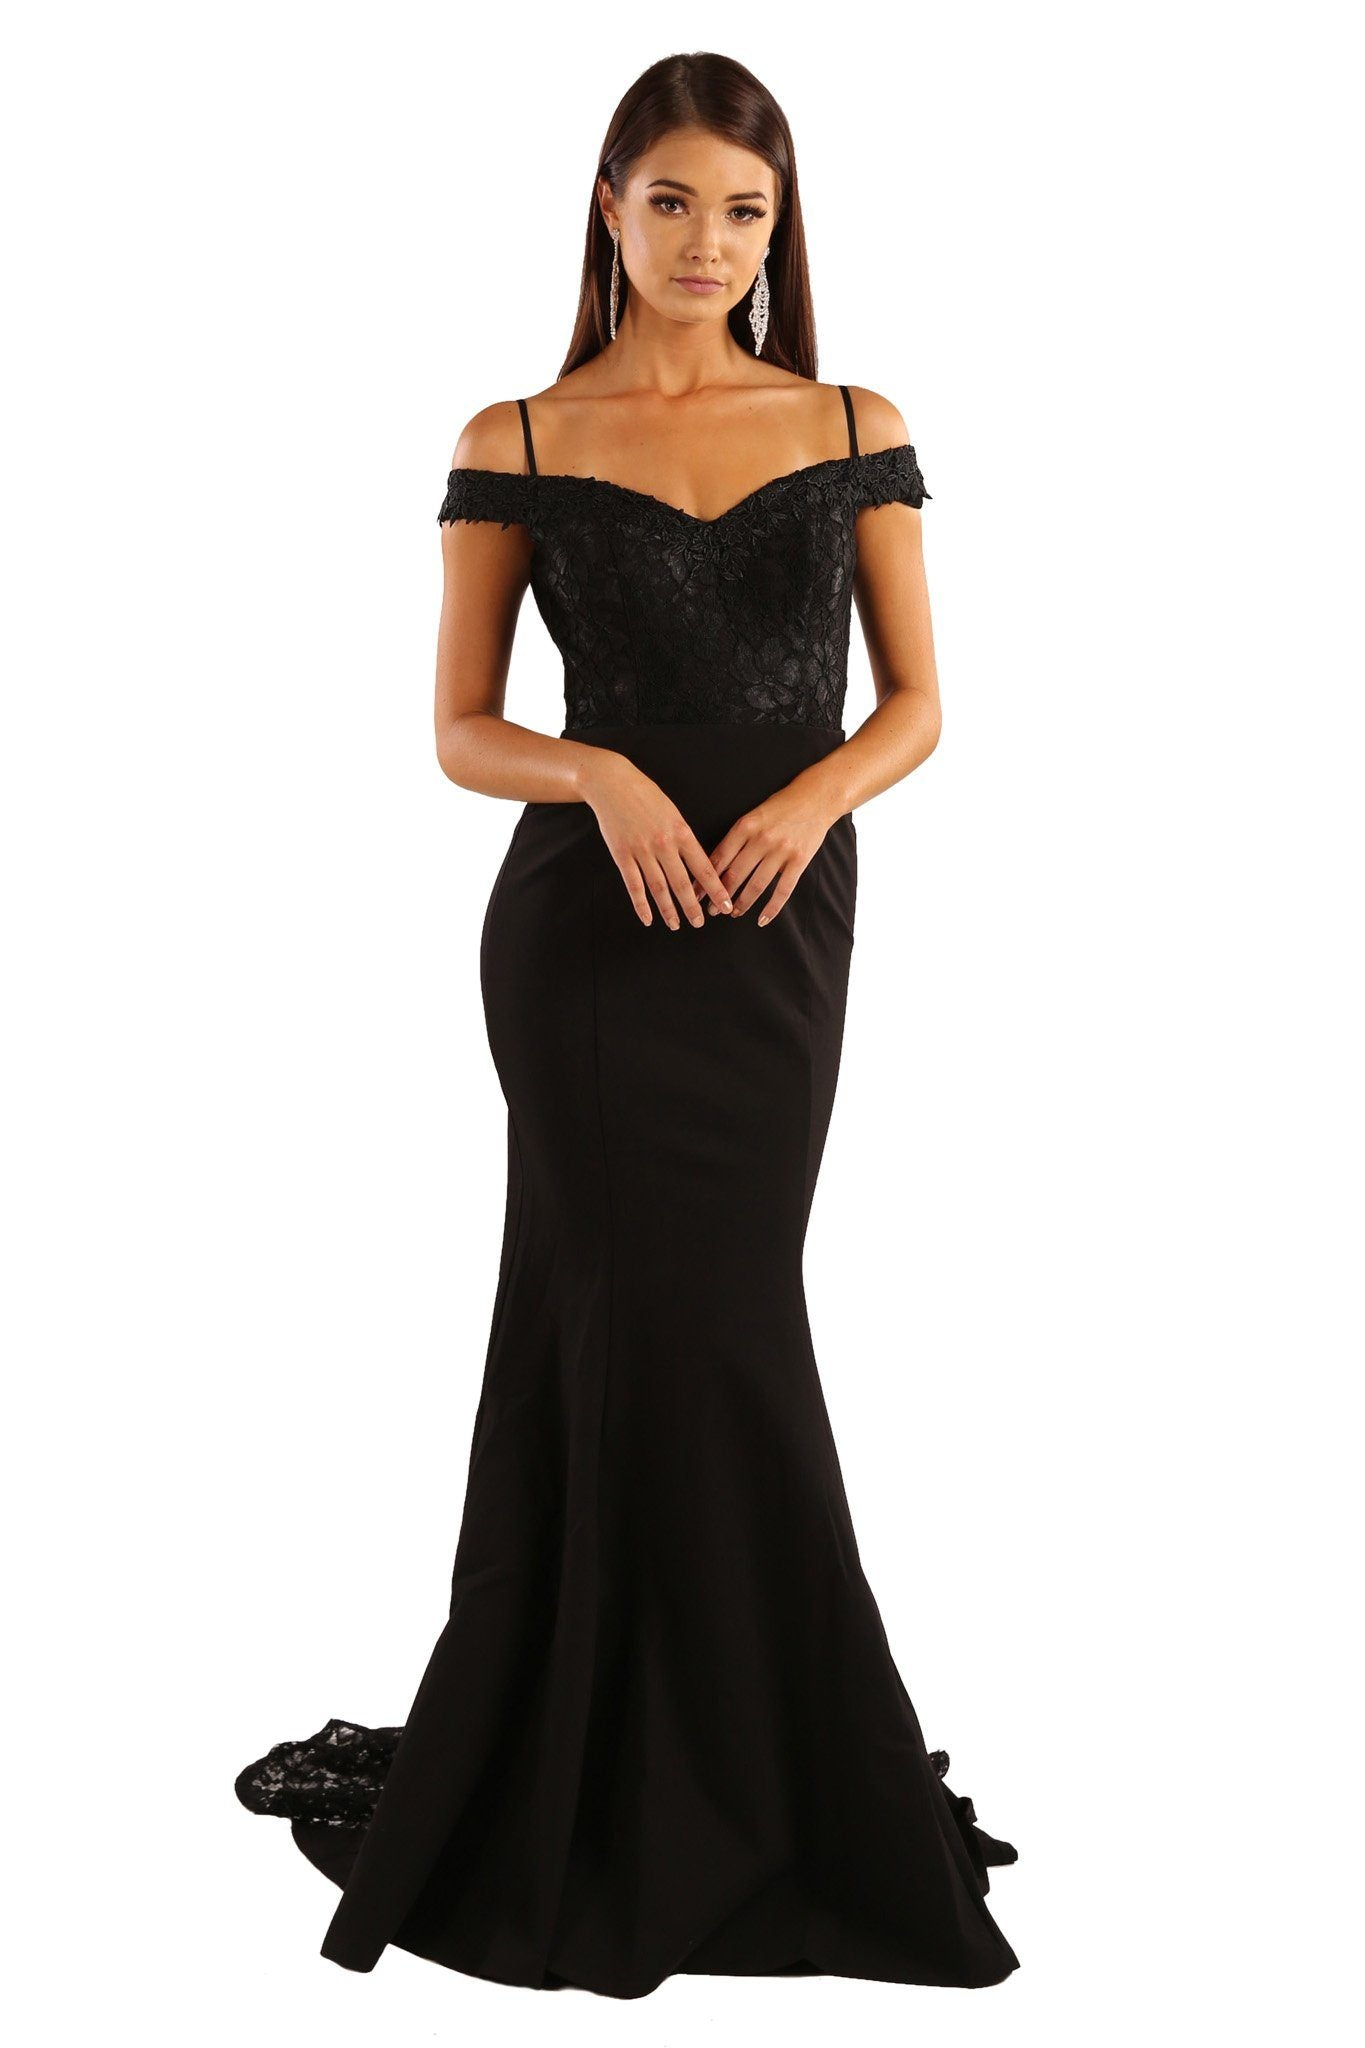 Off the shoulder evening long gown in black color with sweetheart neckline and lace trim details at the upper body and along the flowing trail